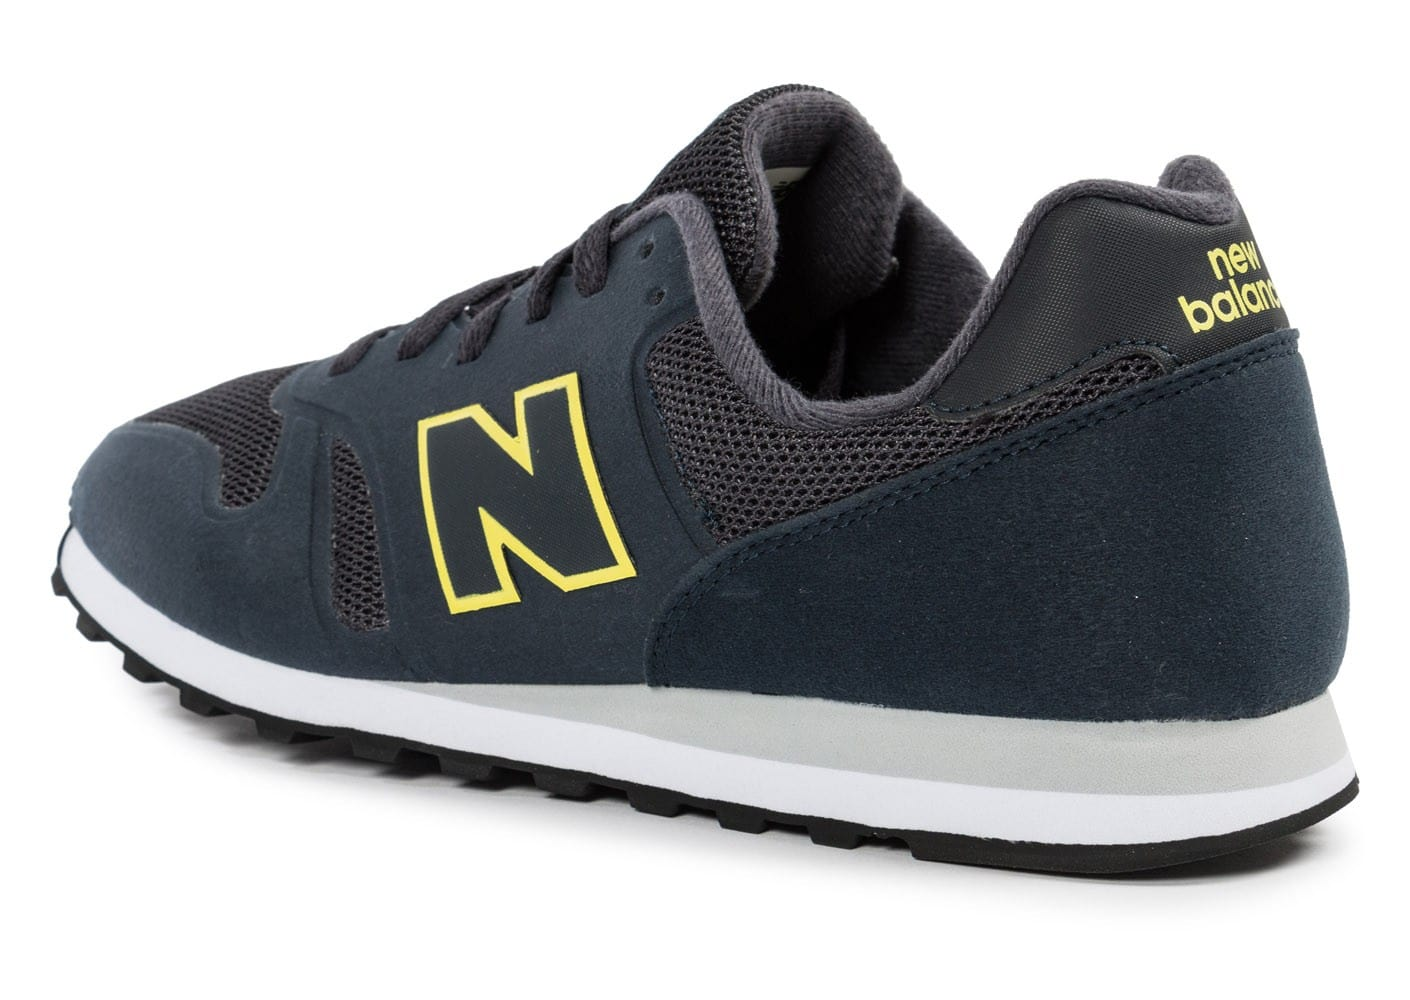 check out 0d2e1 b405d 0538-chaussures-new-balance-md373-ny-bleu-marine-vue-arriere 1.jpg